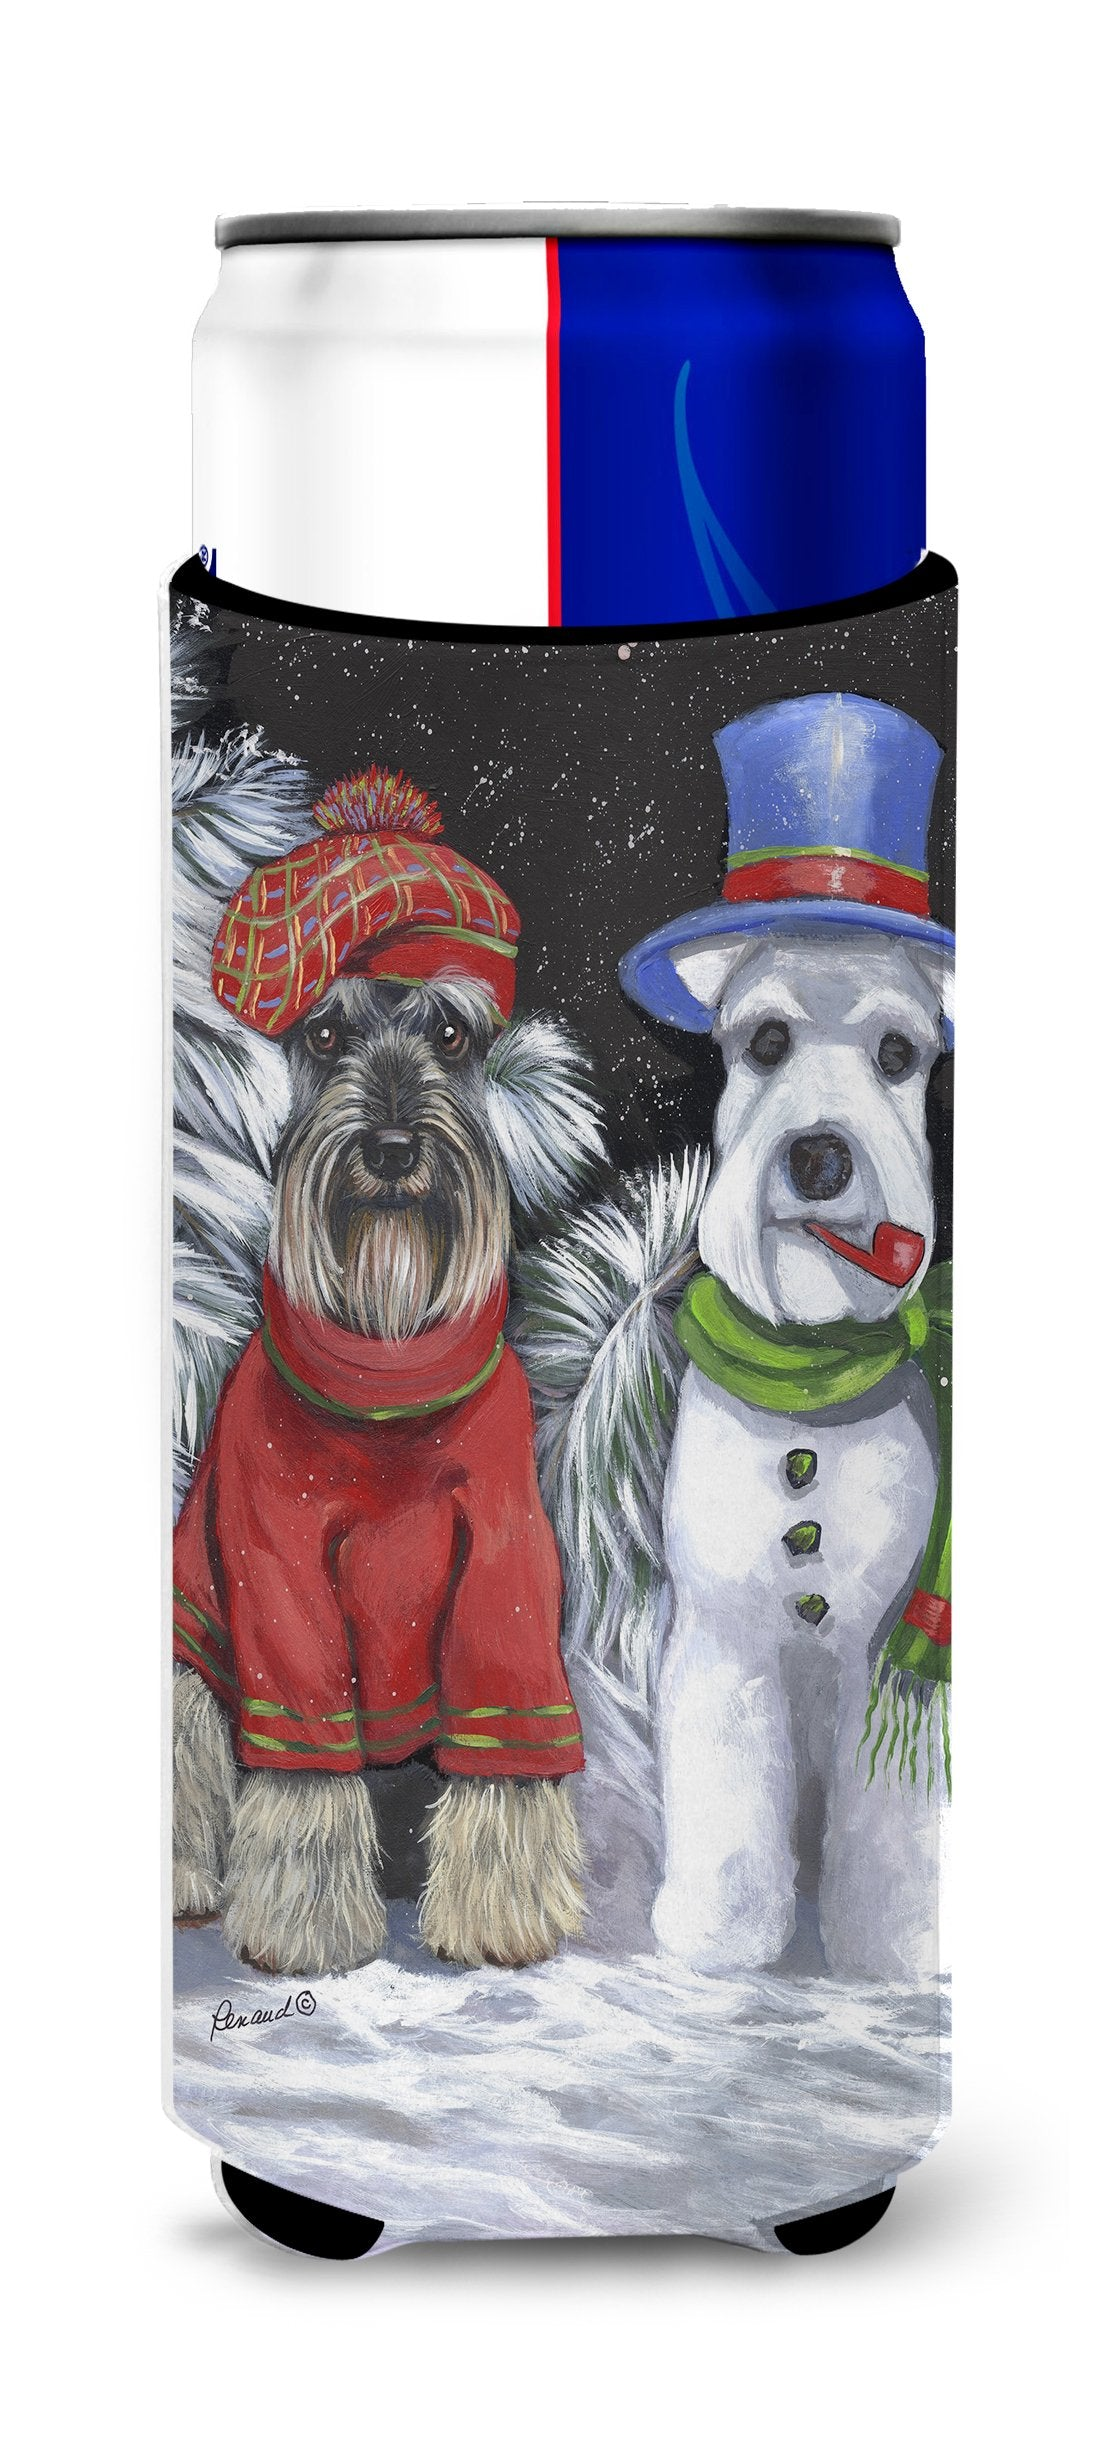 Schnauzer Christmas Snow Dog Ultra Hugger for slim cans PPP3165MUK by Caroline's Treasures